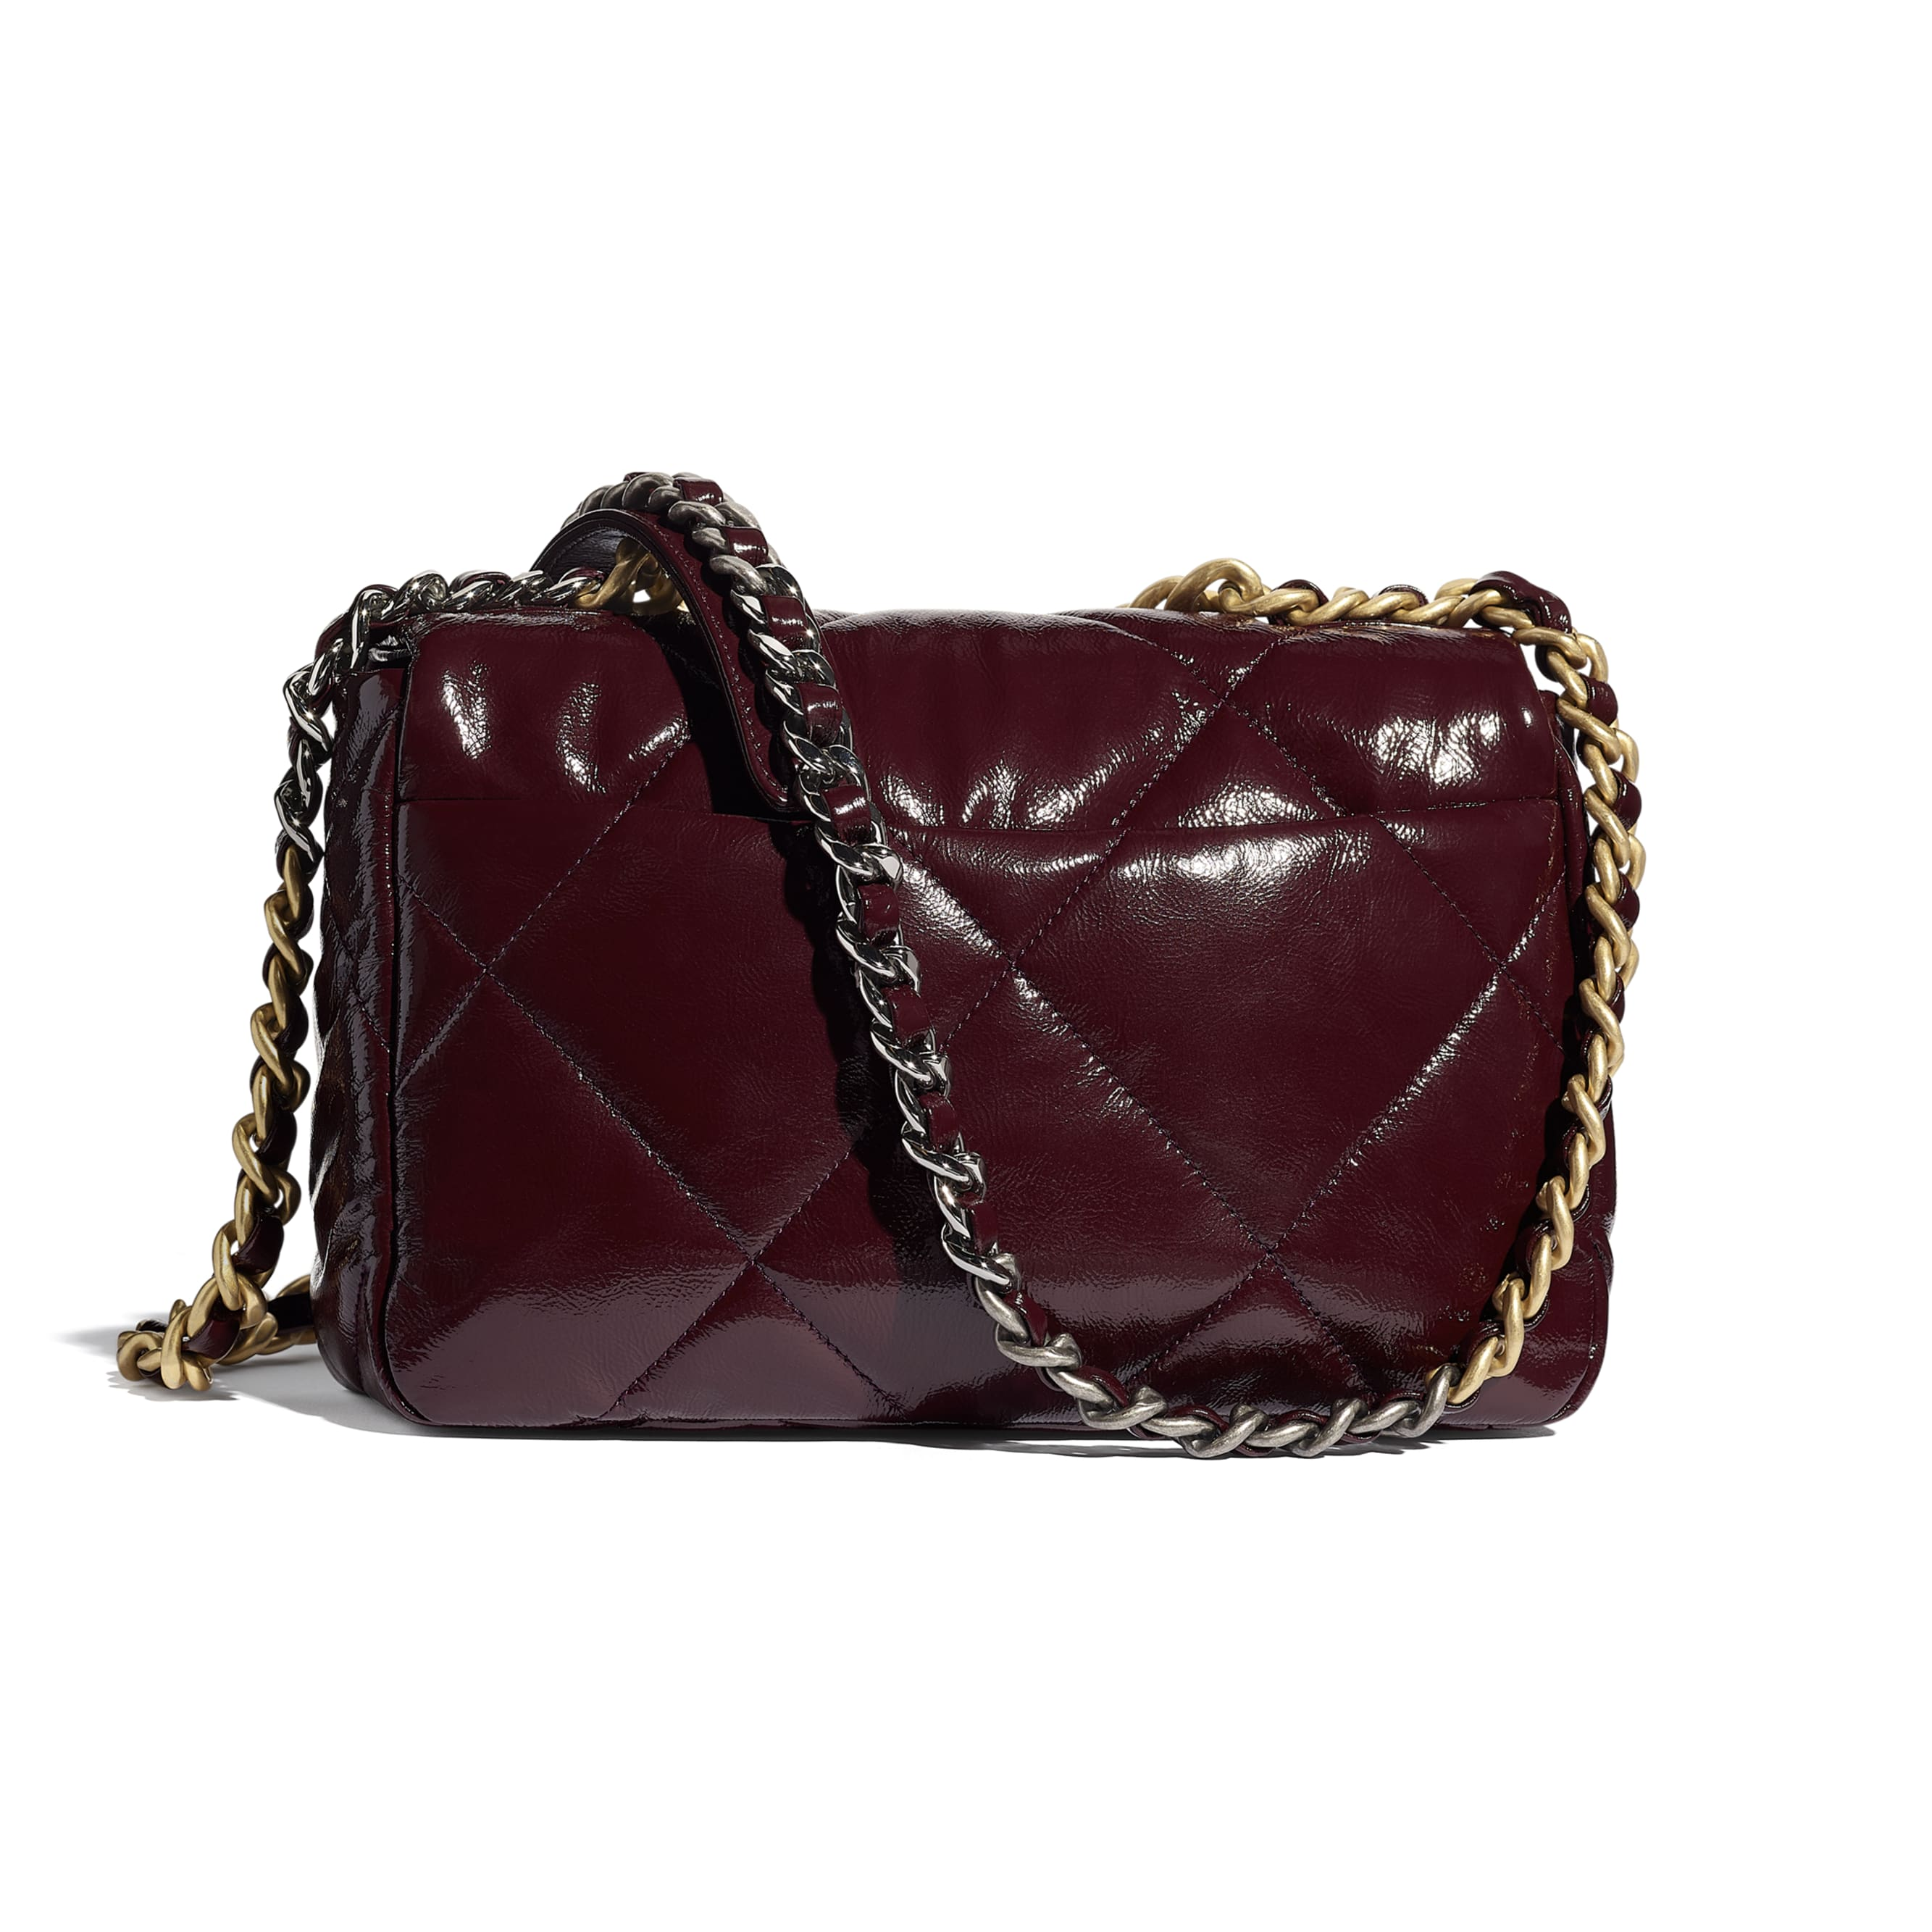 CHANEL 19 Flap Bag - Burgundy - Shiny Crumpled Calfskin, Gold-Tone, Silver-Tone & Ruthenium-Finish Metal - CHANEL - Alternative view - see standard sized version